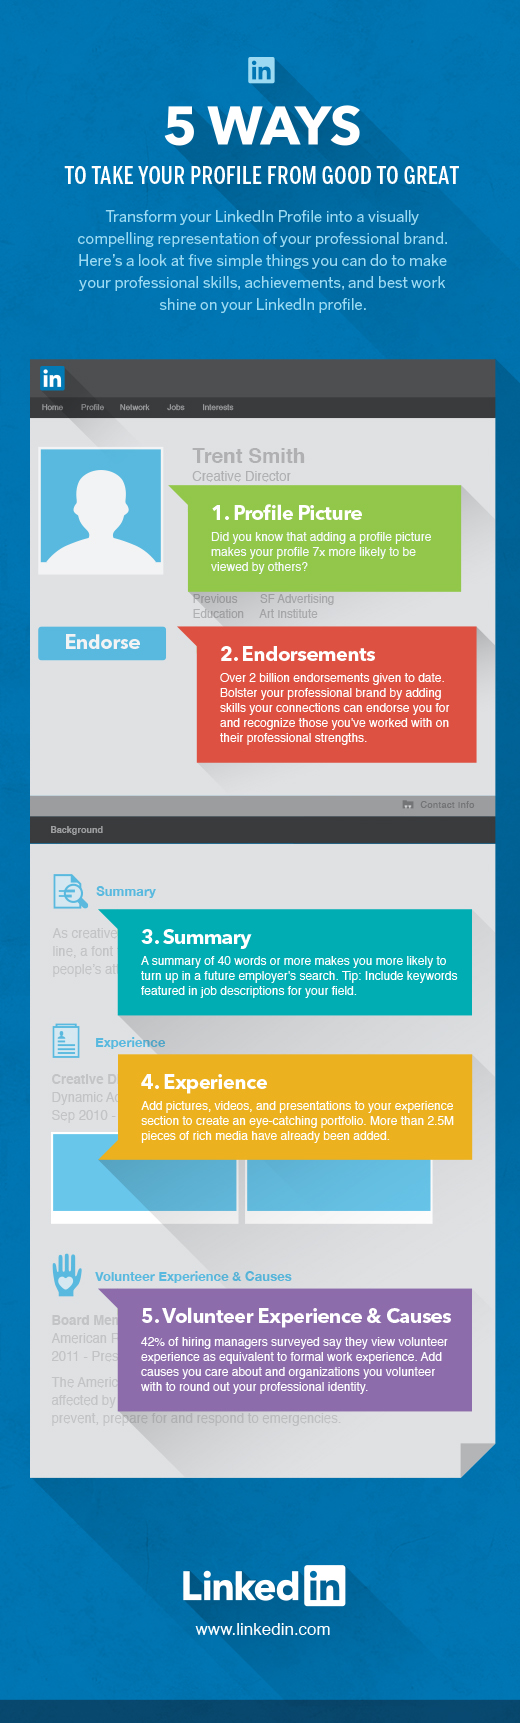 five simple ways to boost your professional brand on linkedin 5 linkedin profile tips infographic